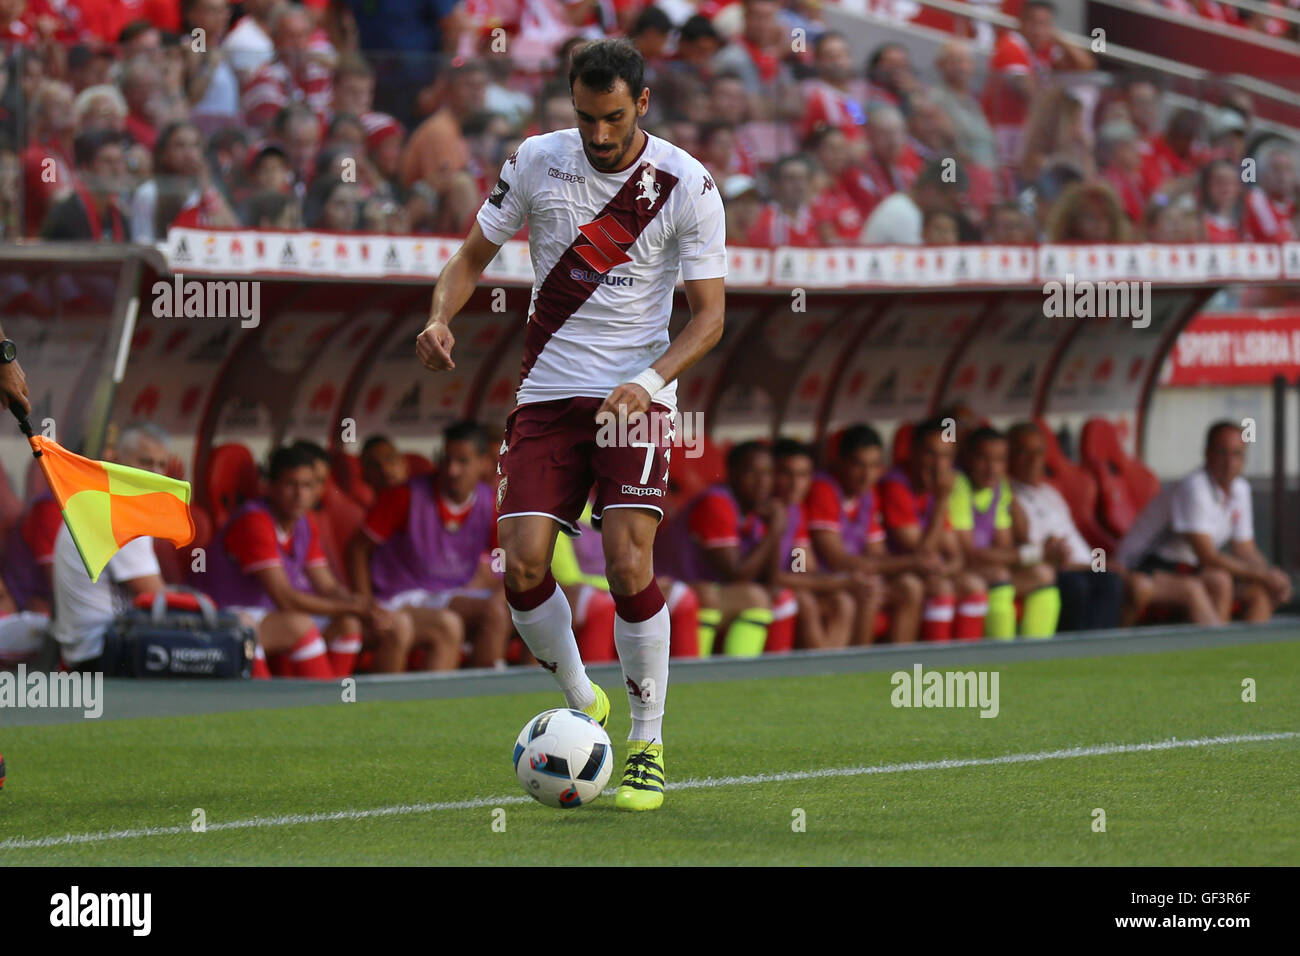 Lisbon, Portugal. 27th July, 2016. Torino's defender Davide Zappacosta Credit:  Alexandre Sousa/Alamy Live News Stock Photo